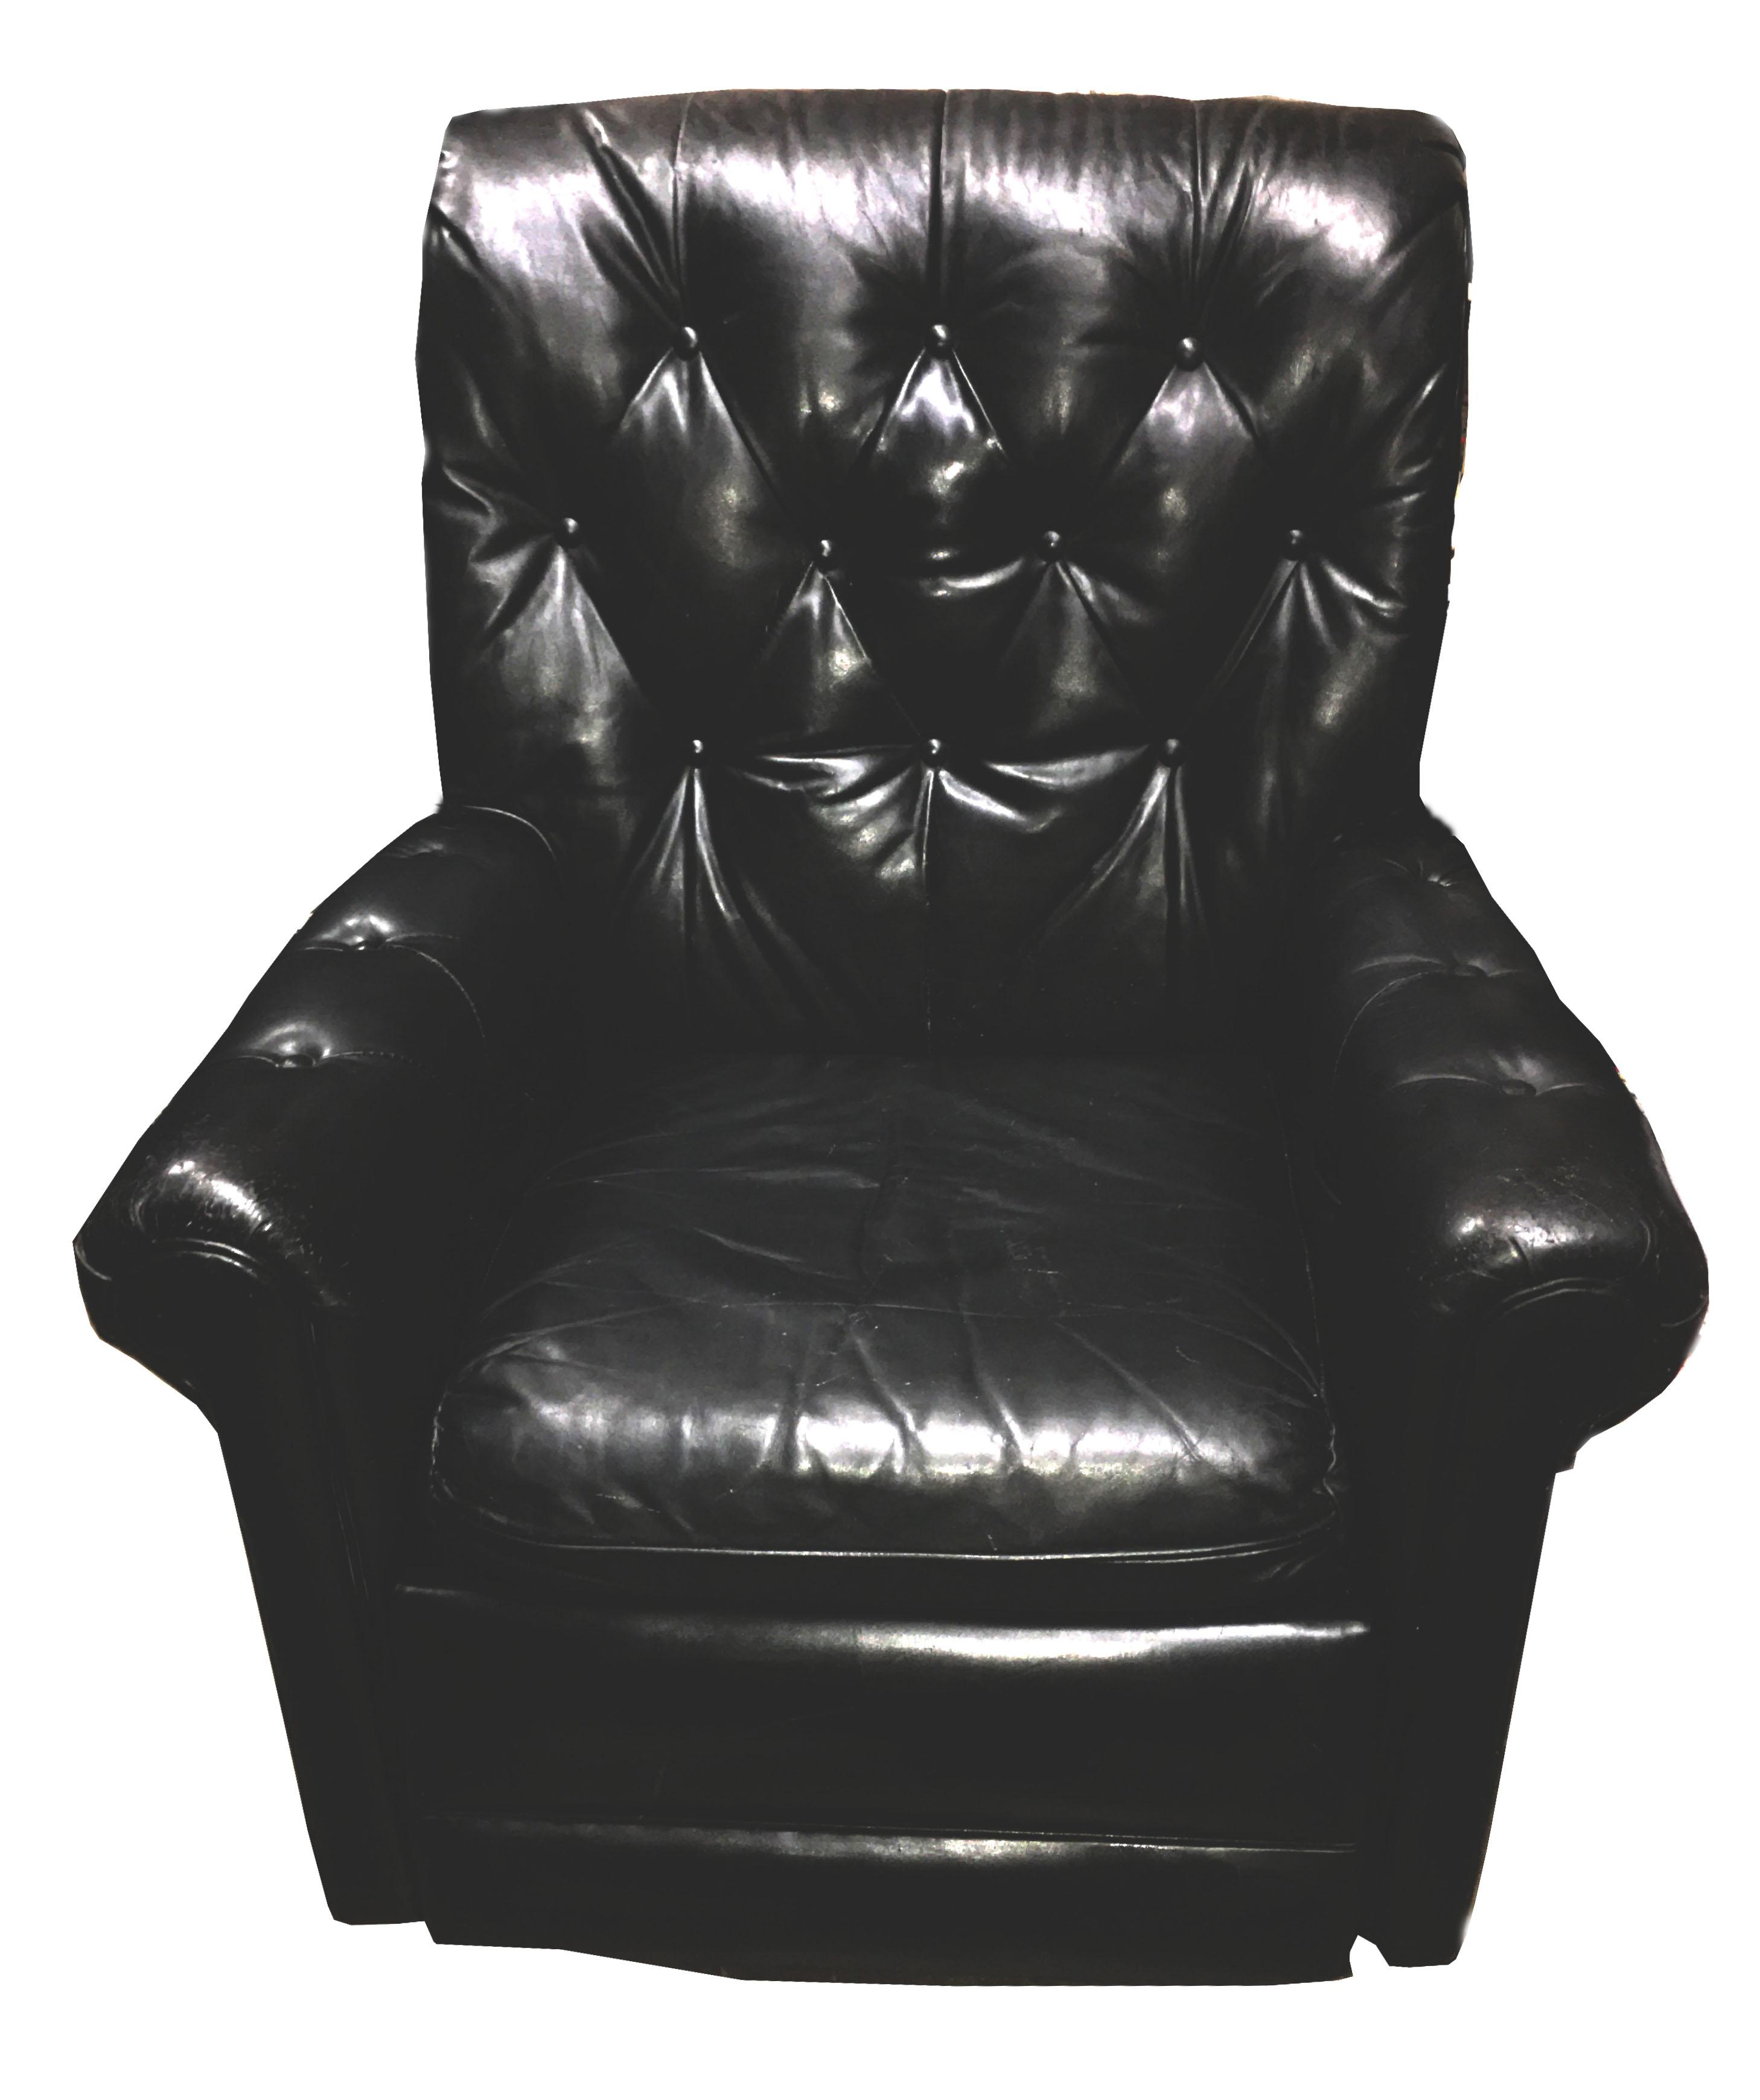 Mid-Century Chesterfield Black Tufted Leather Recliner Chair - Image 7 of 7  sc 1 st  Chairish & Mid-Century Chesterfield Black Tufted Leather Recliner Chair ... islam-shia.org